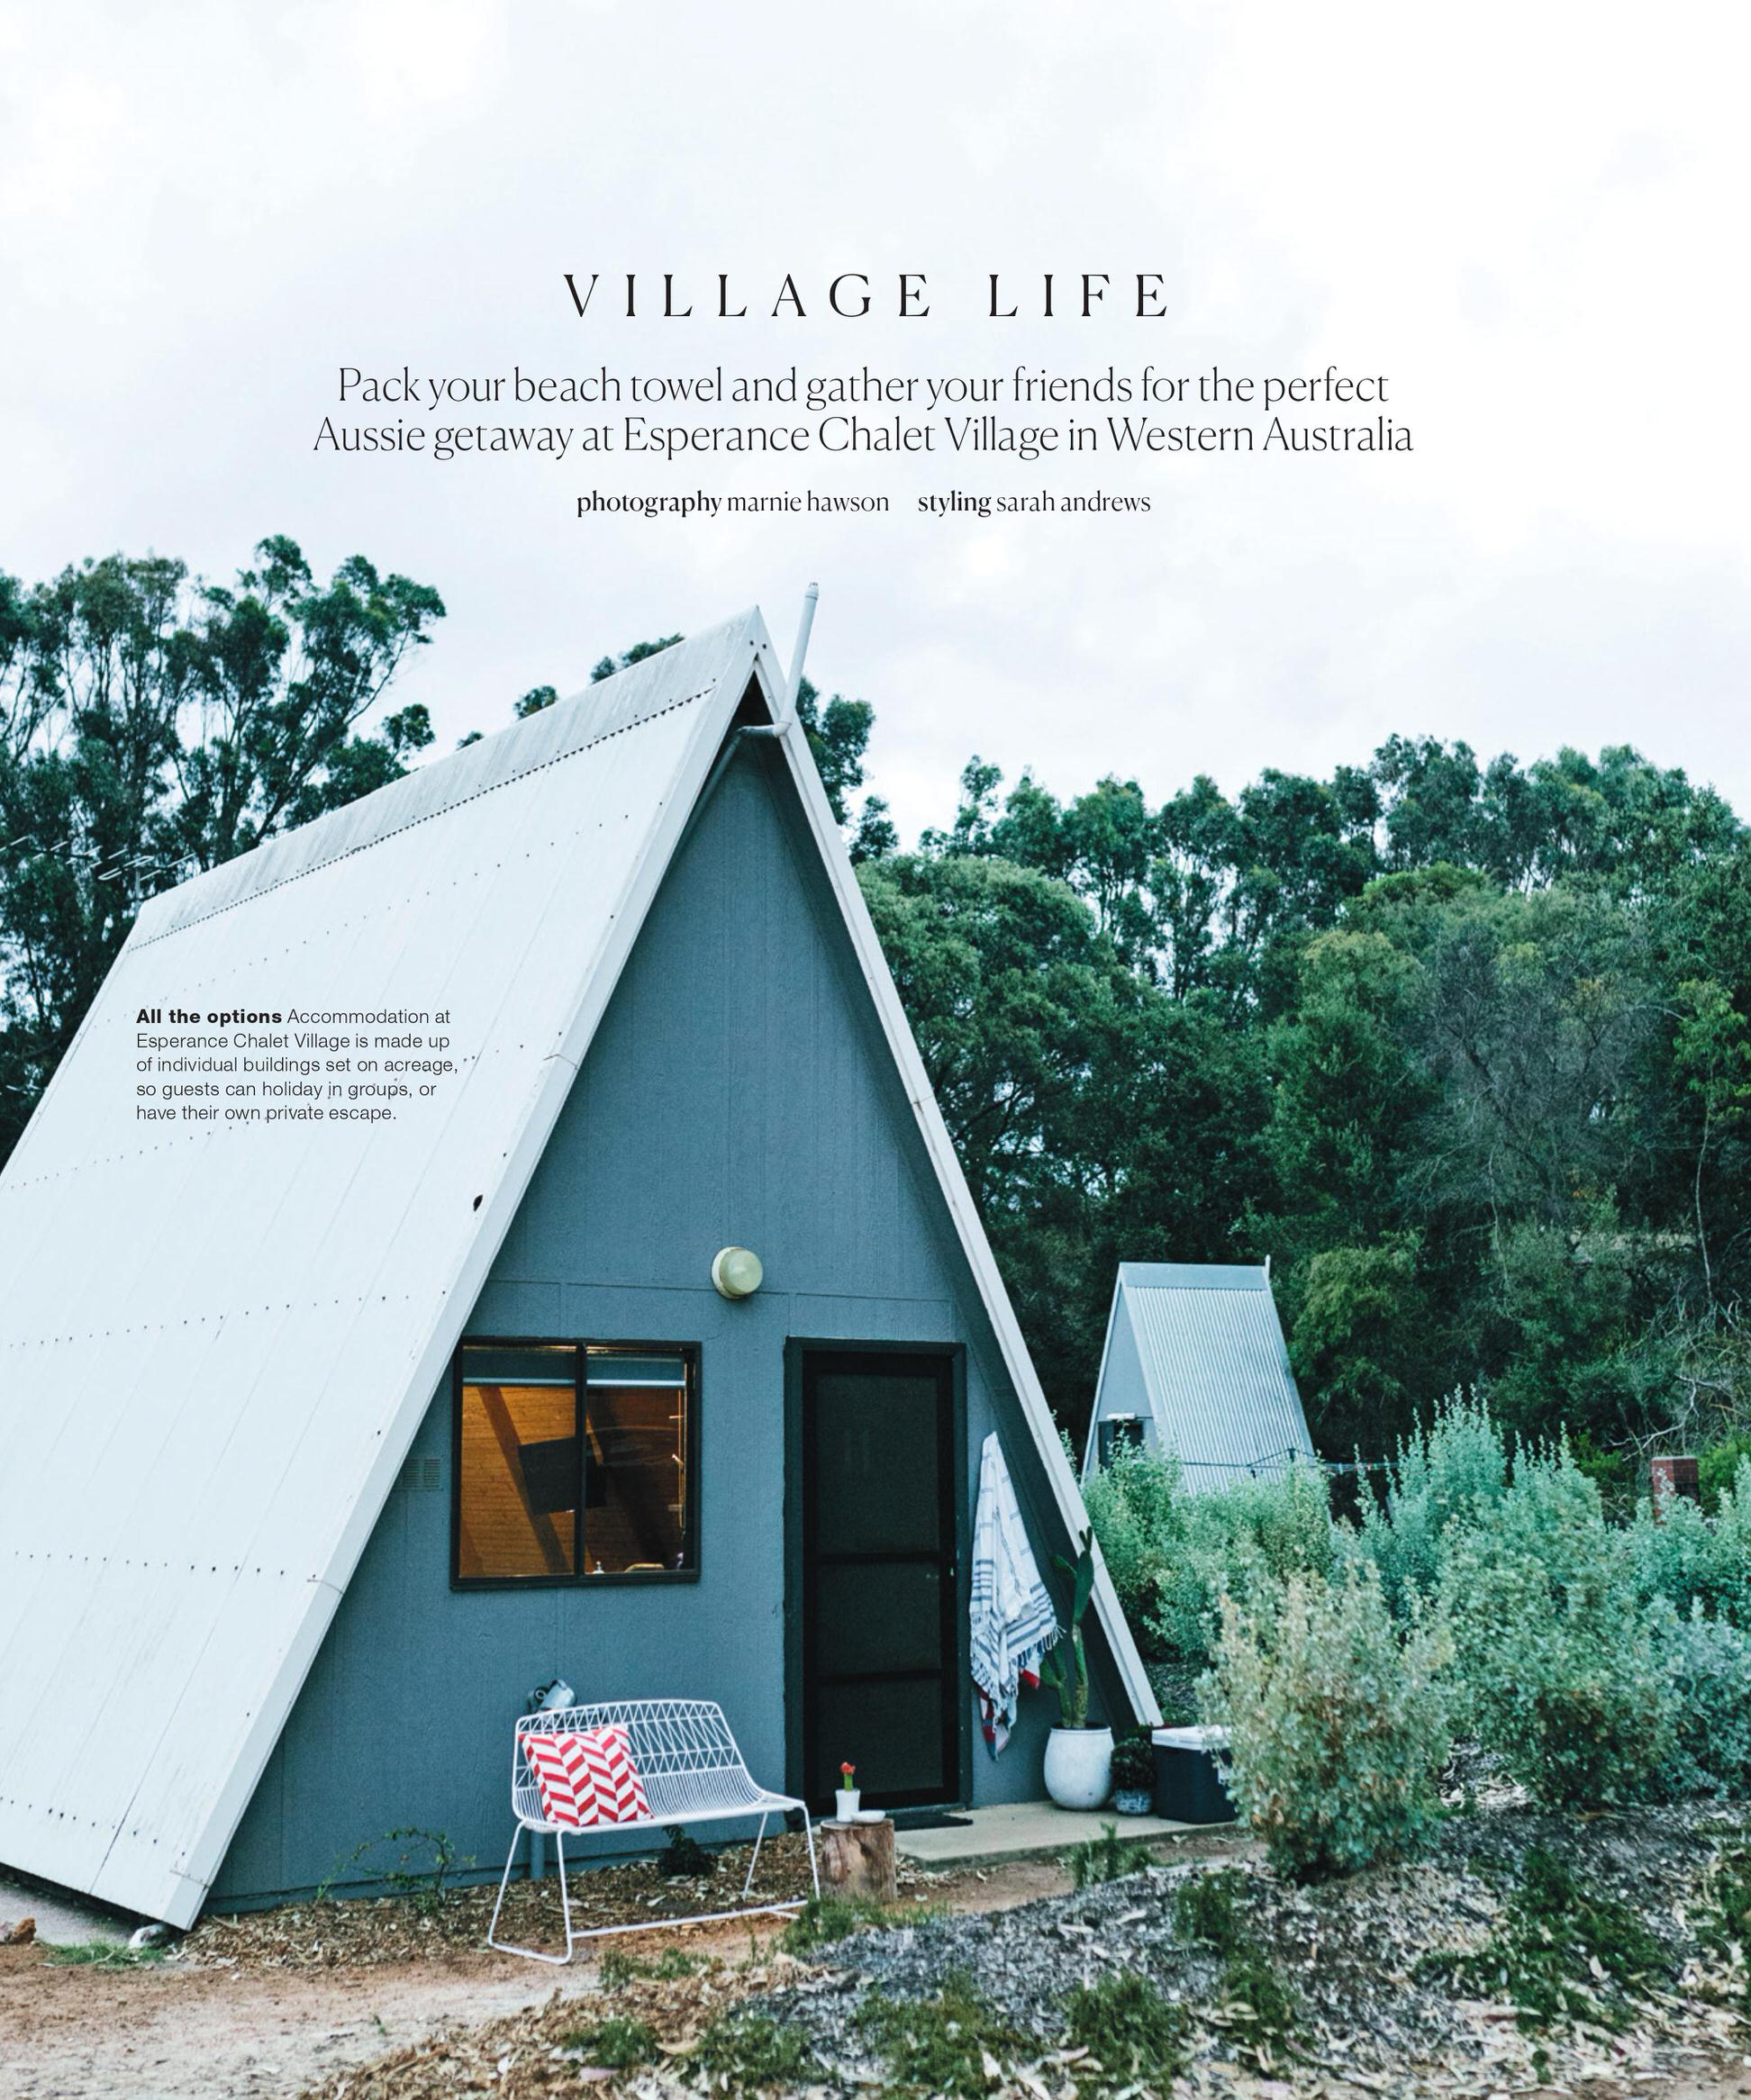 Melbourne travel photographer, Marnie Hawson for Esperance Chalet Village and Real Living. Styled by Sarah Andrews.